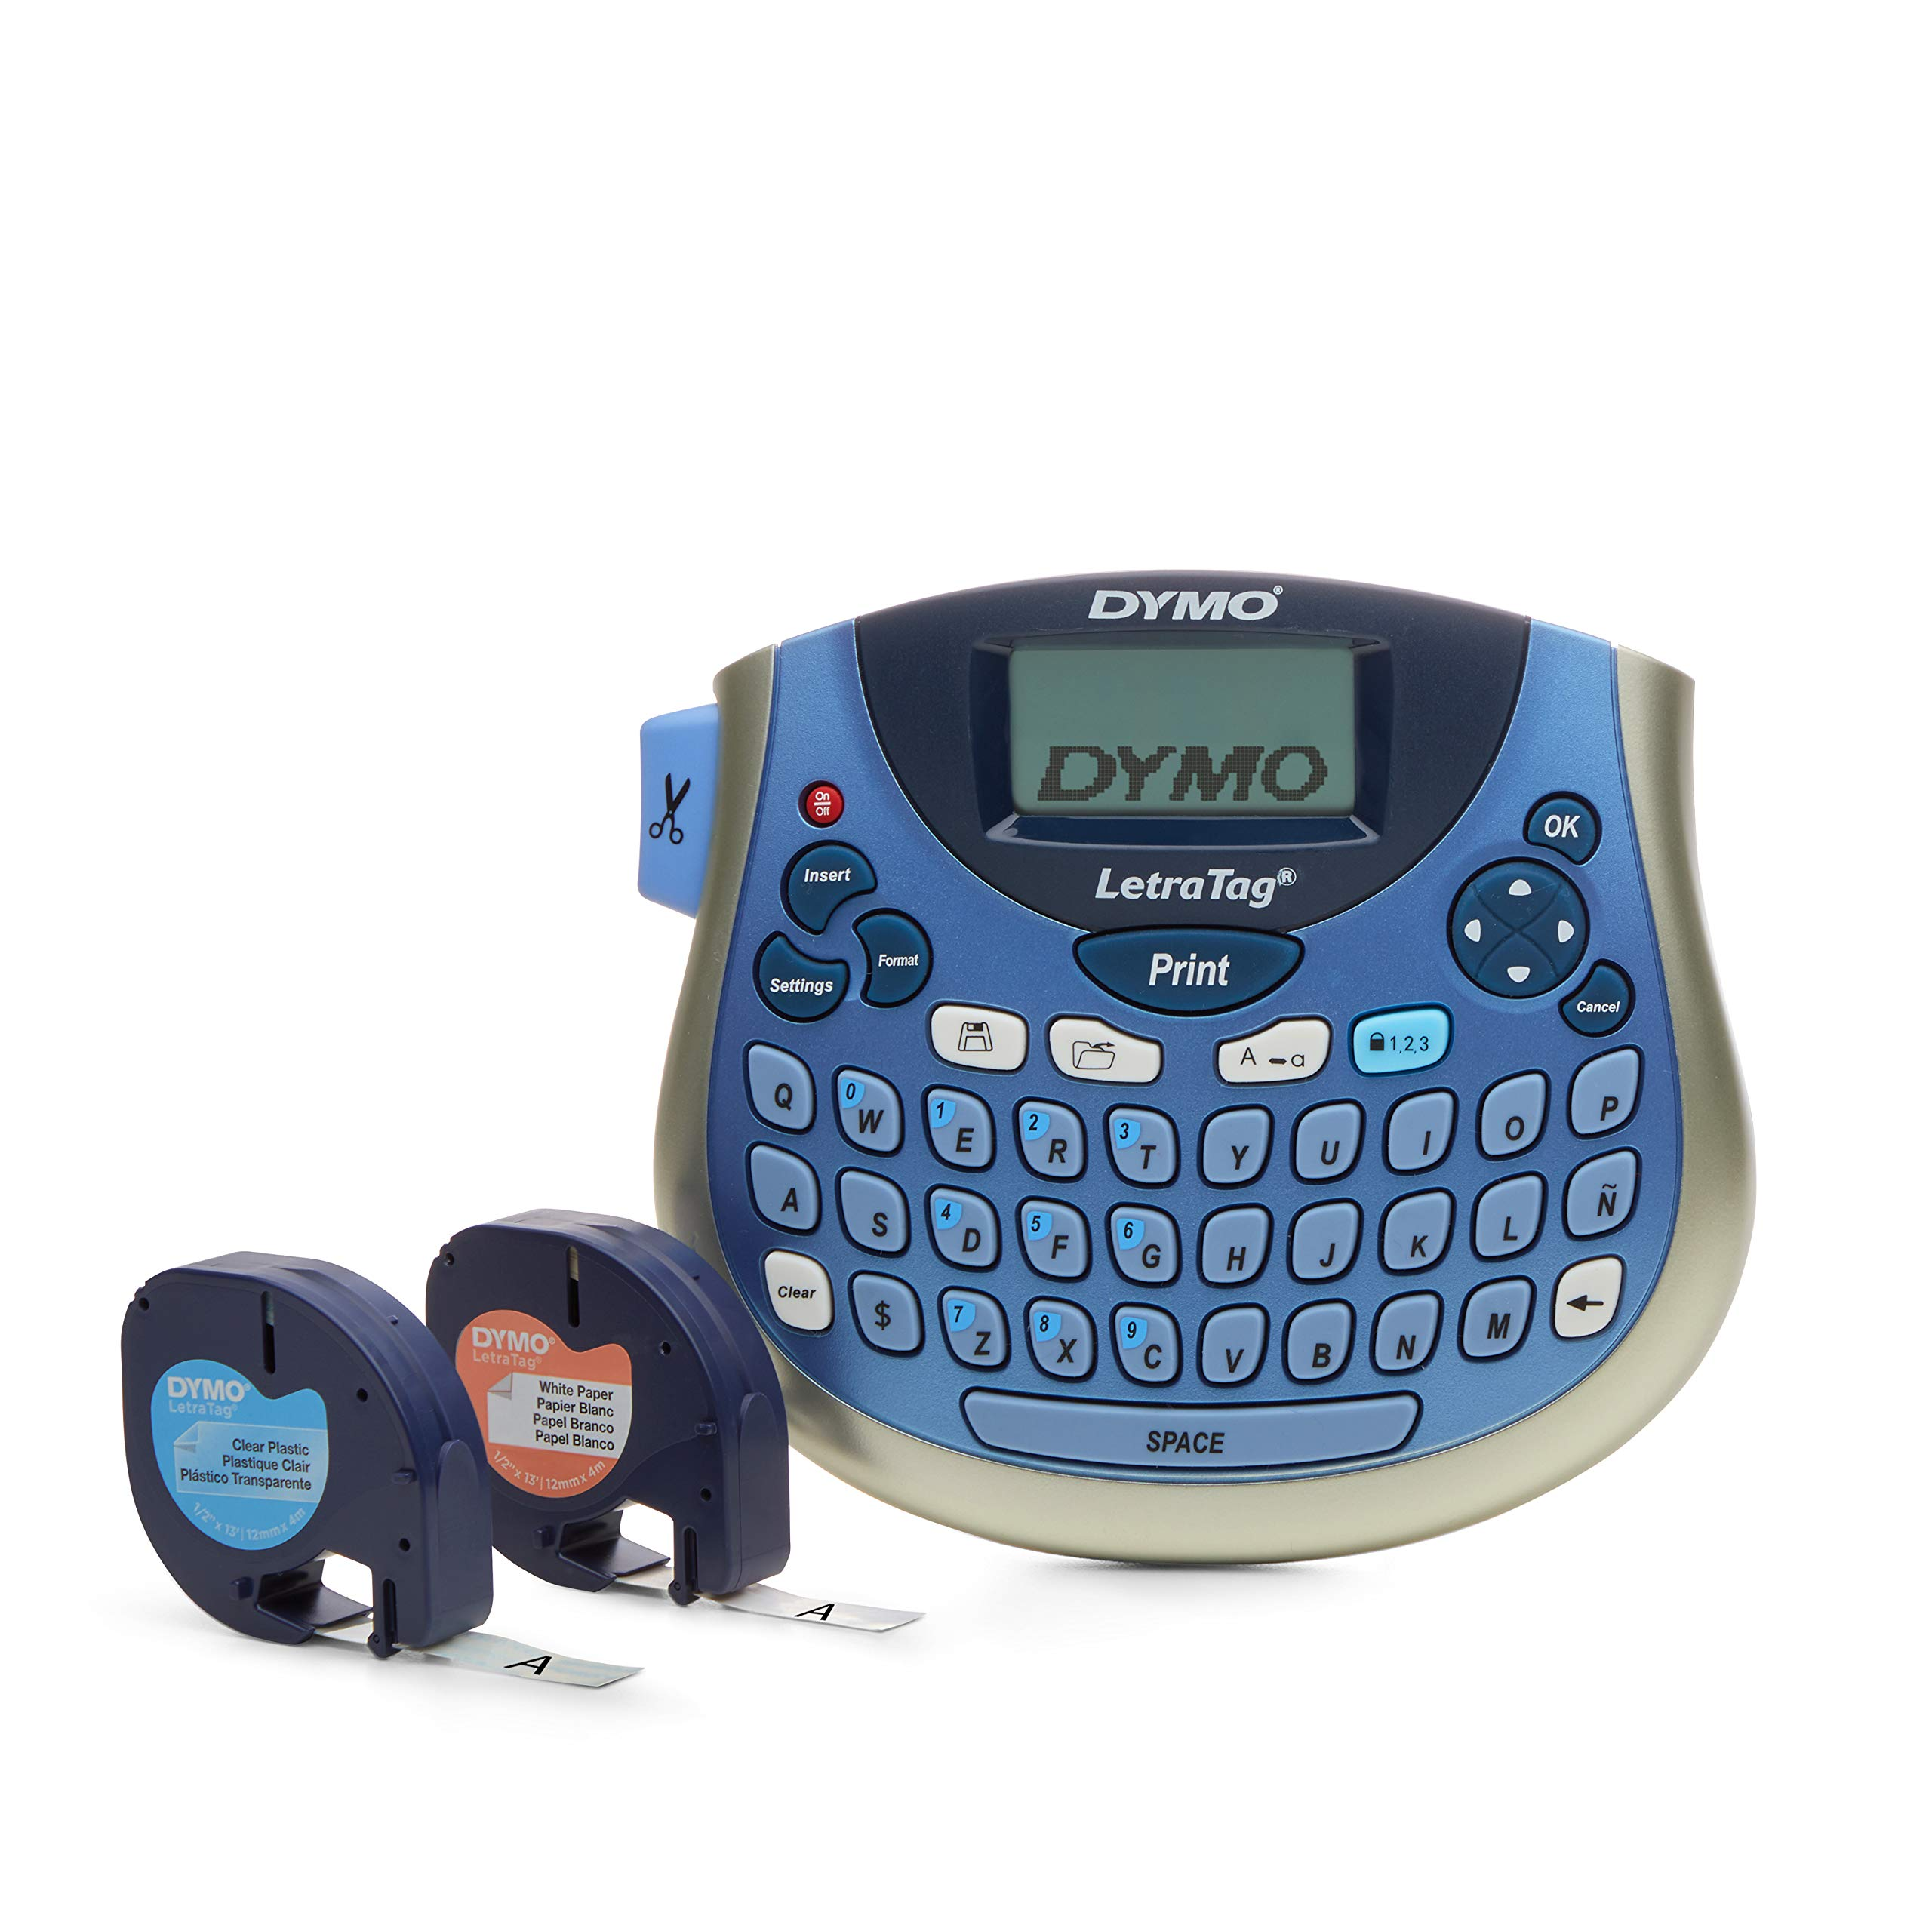 DYMO LetraTag LT-100T Plus Compact, Portable Label Maker with QWERTY Keyboard (1733013) by DYMO